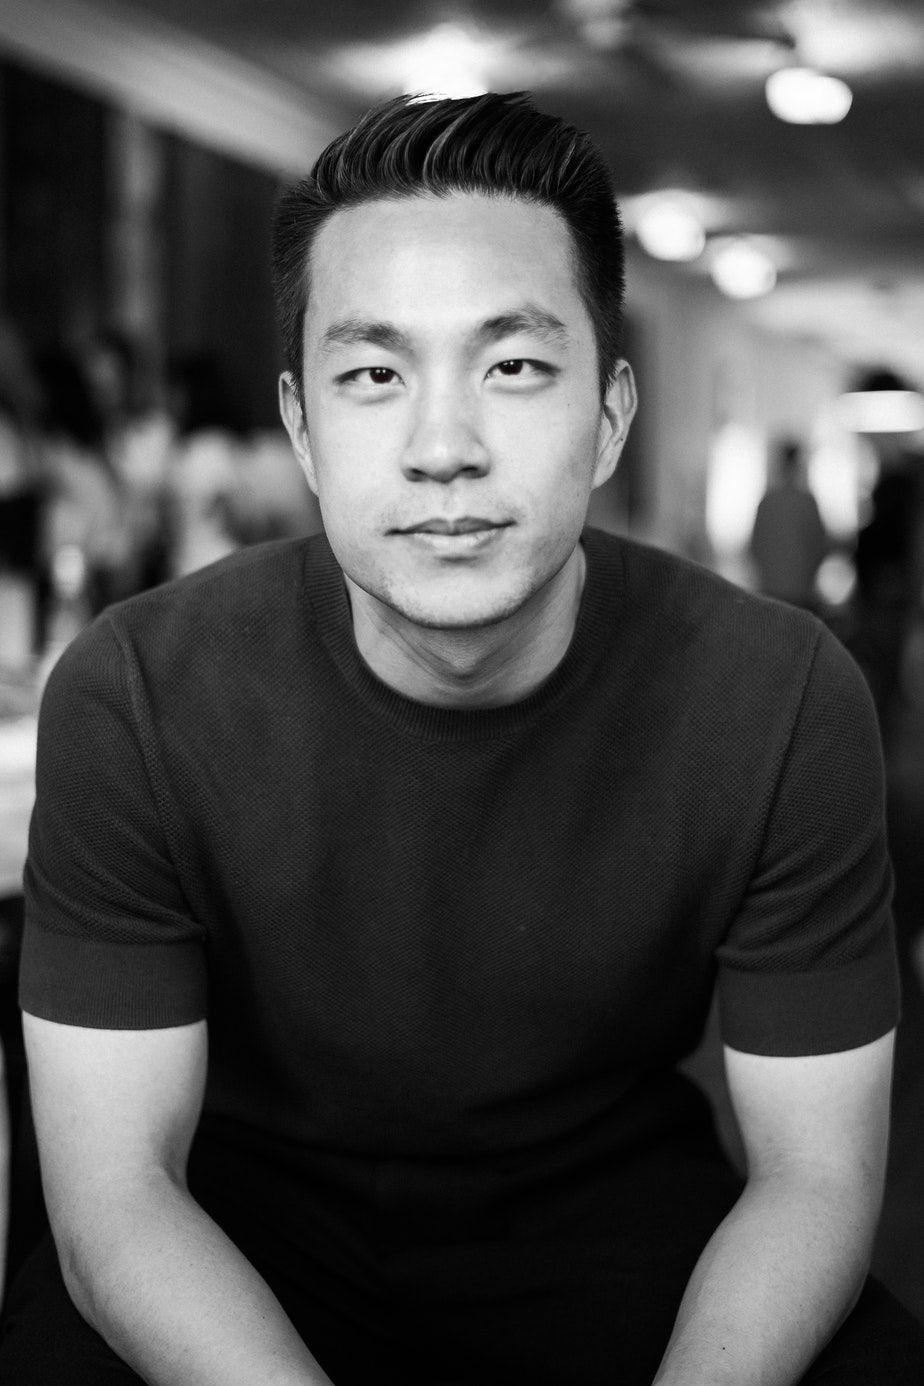 caption: portrait of Brooklyn-based photographer Andrew Kung